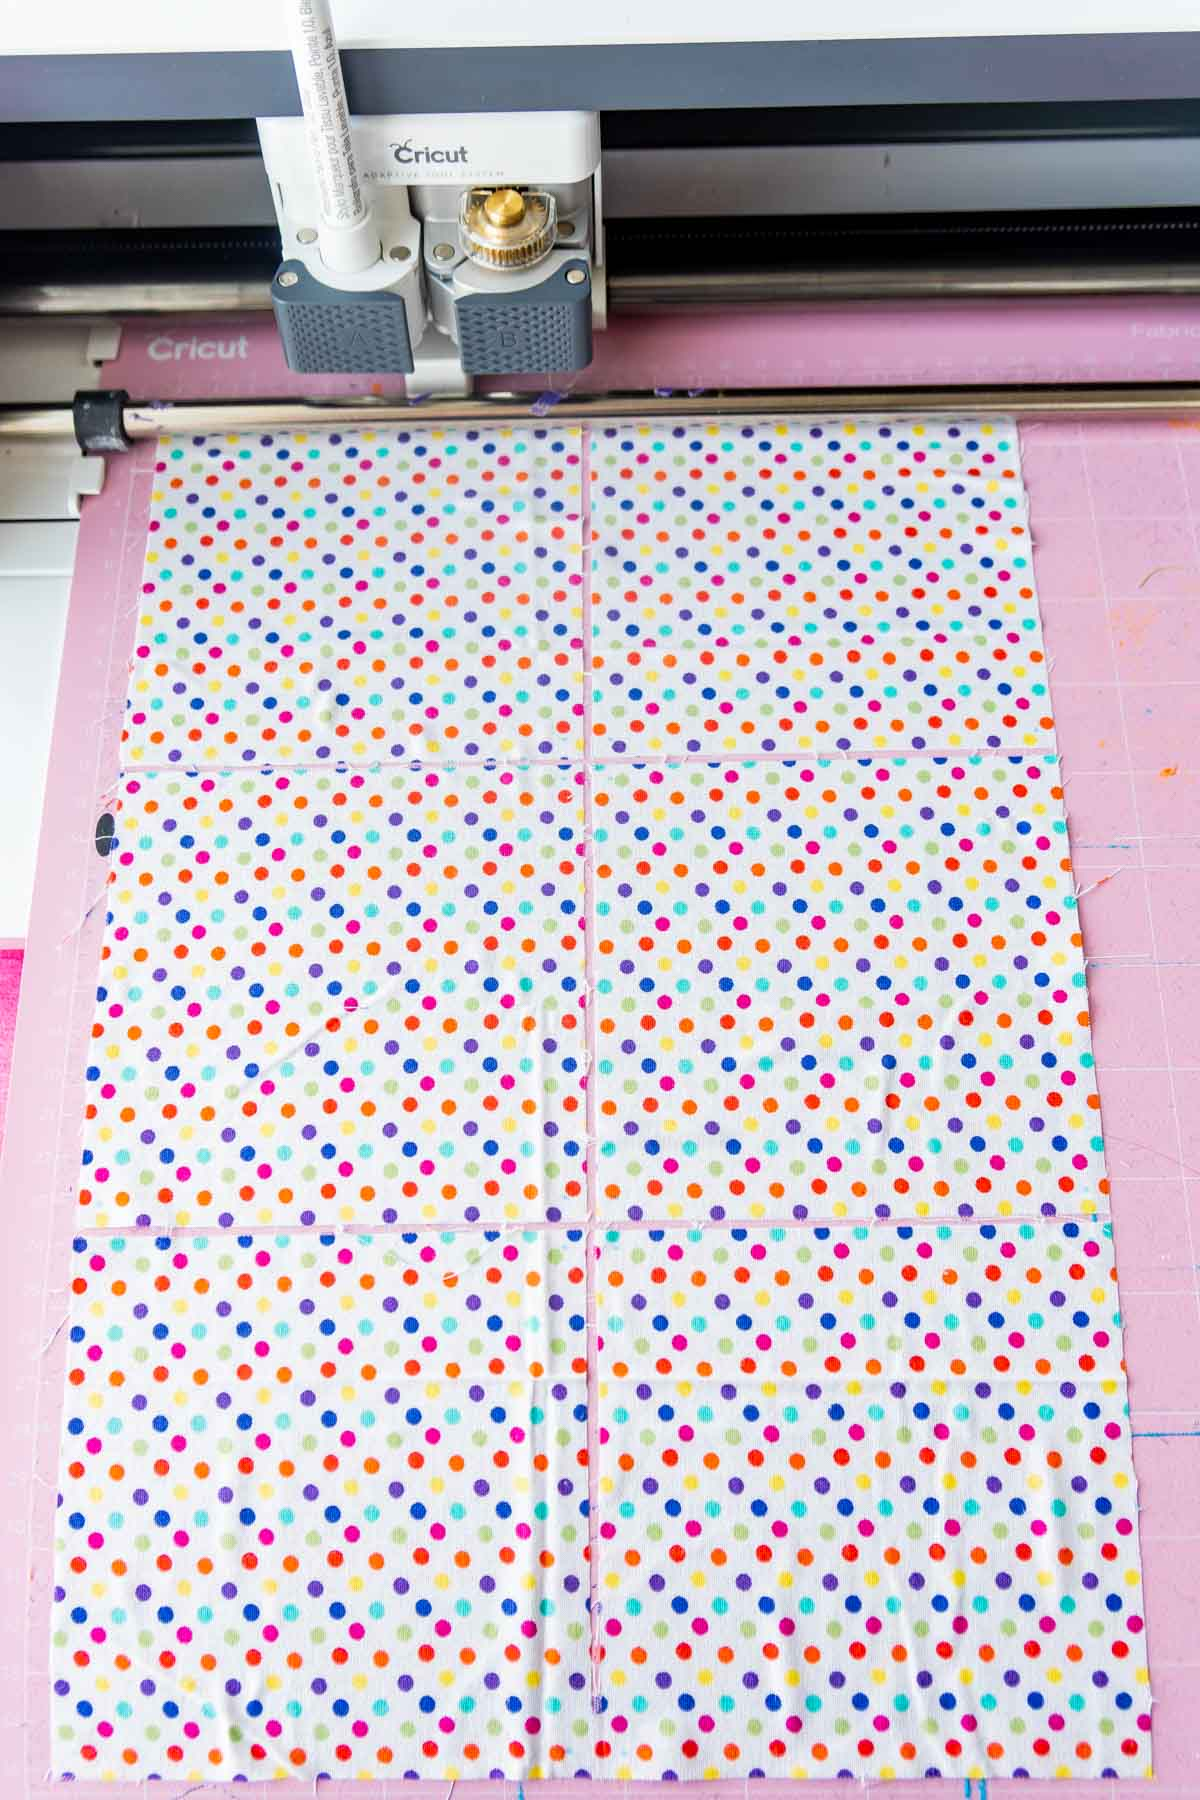 Squares of fabric with a Cricut Maker